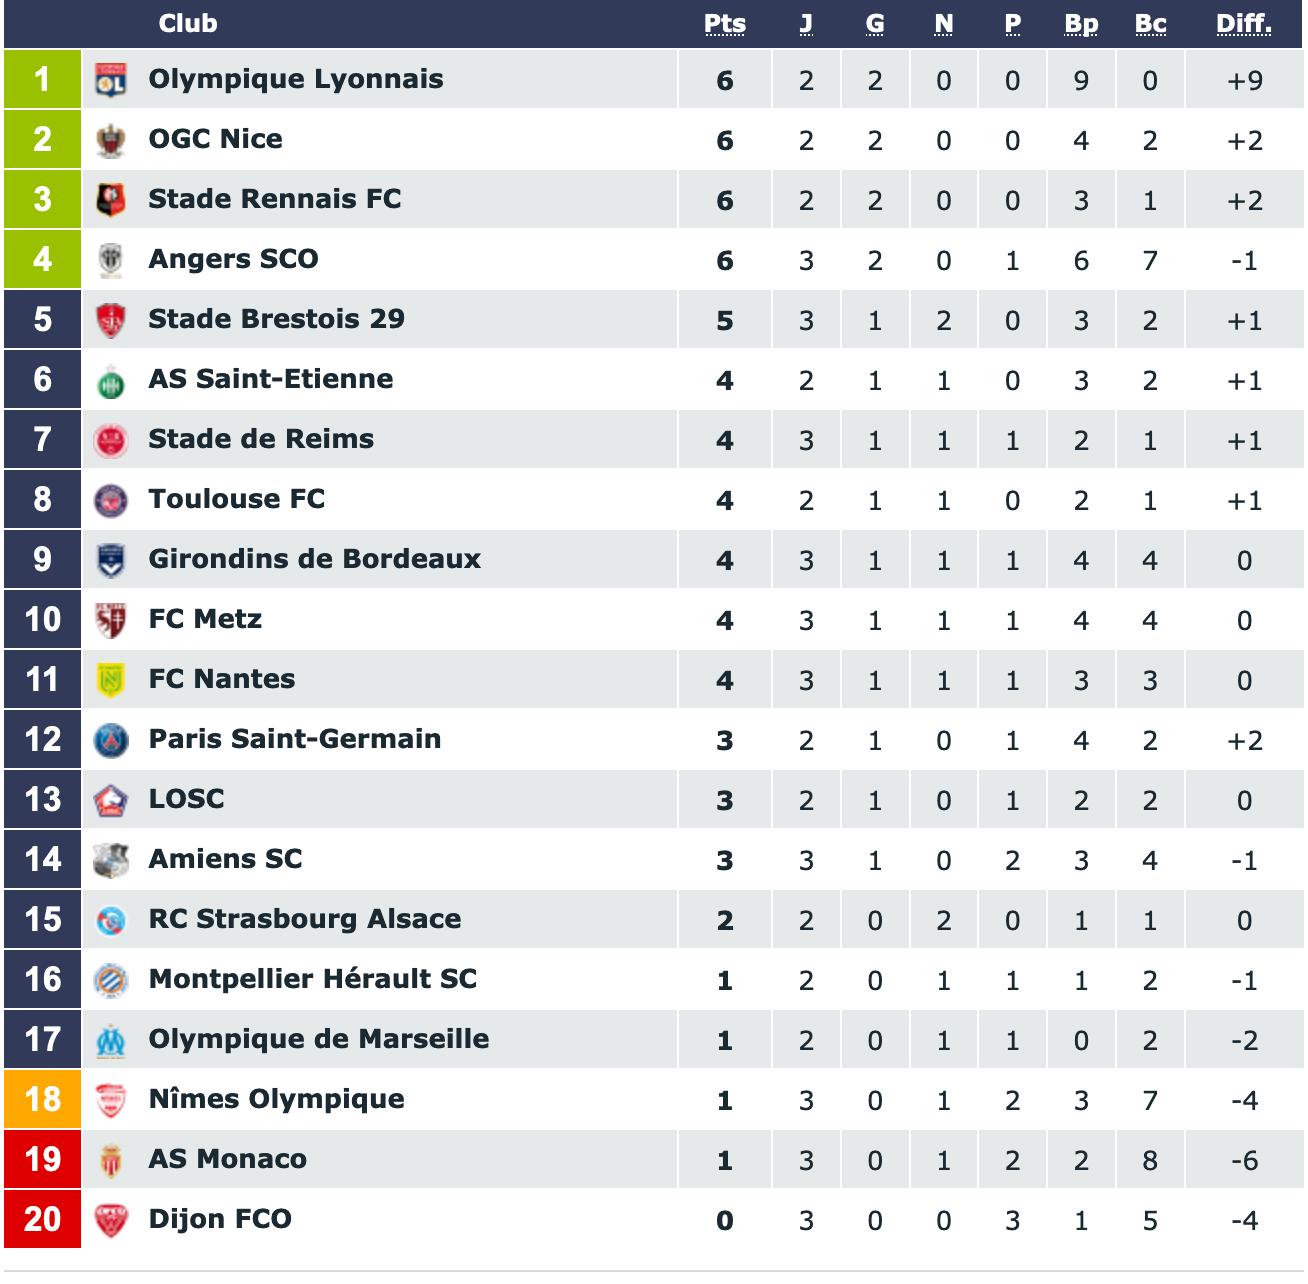 Screenshot_2019-08-25 Classement Ligue 1 Conforama saison 2019 2020.png (212 KB)